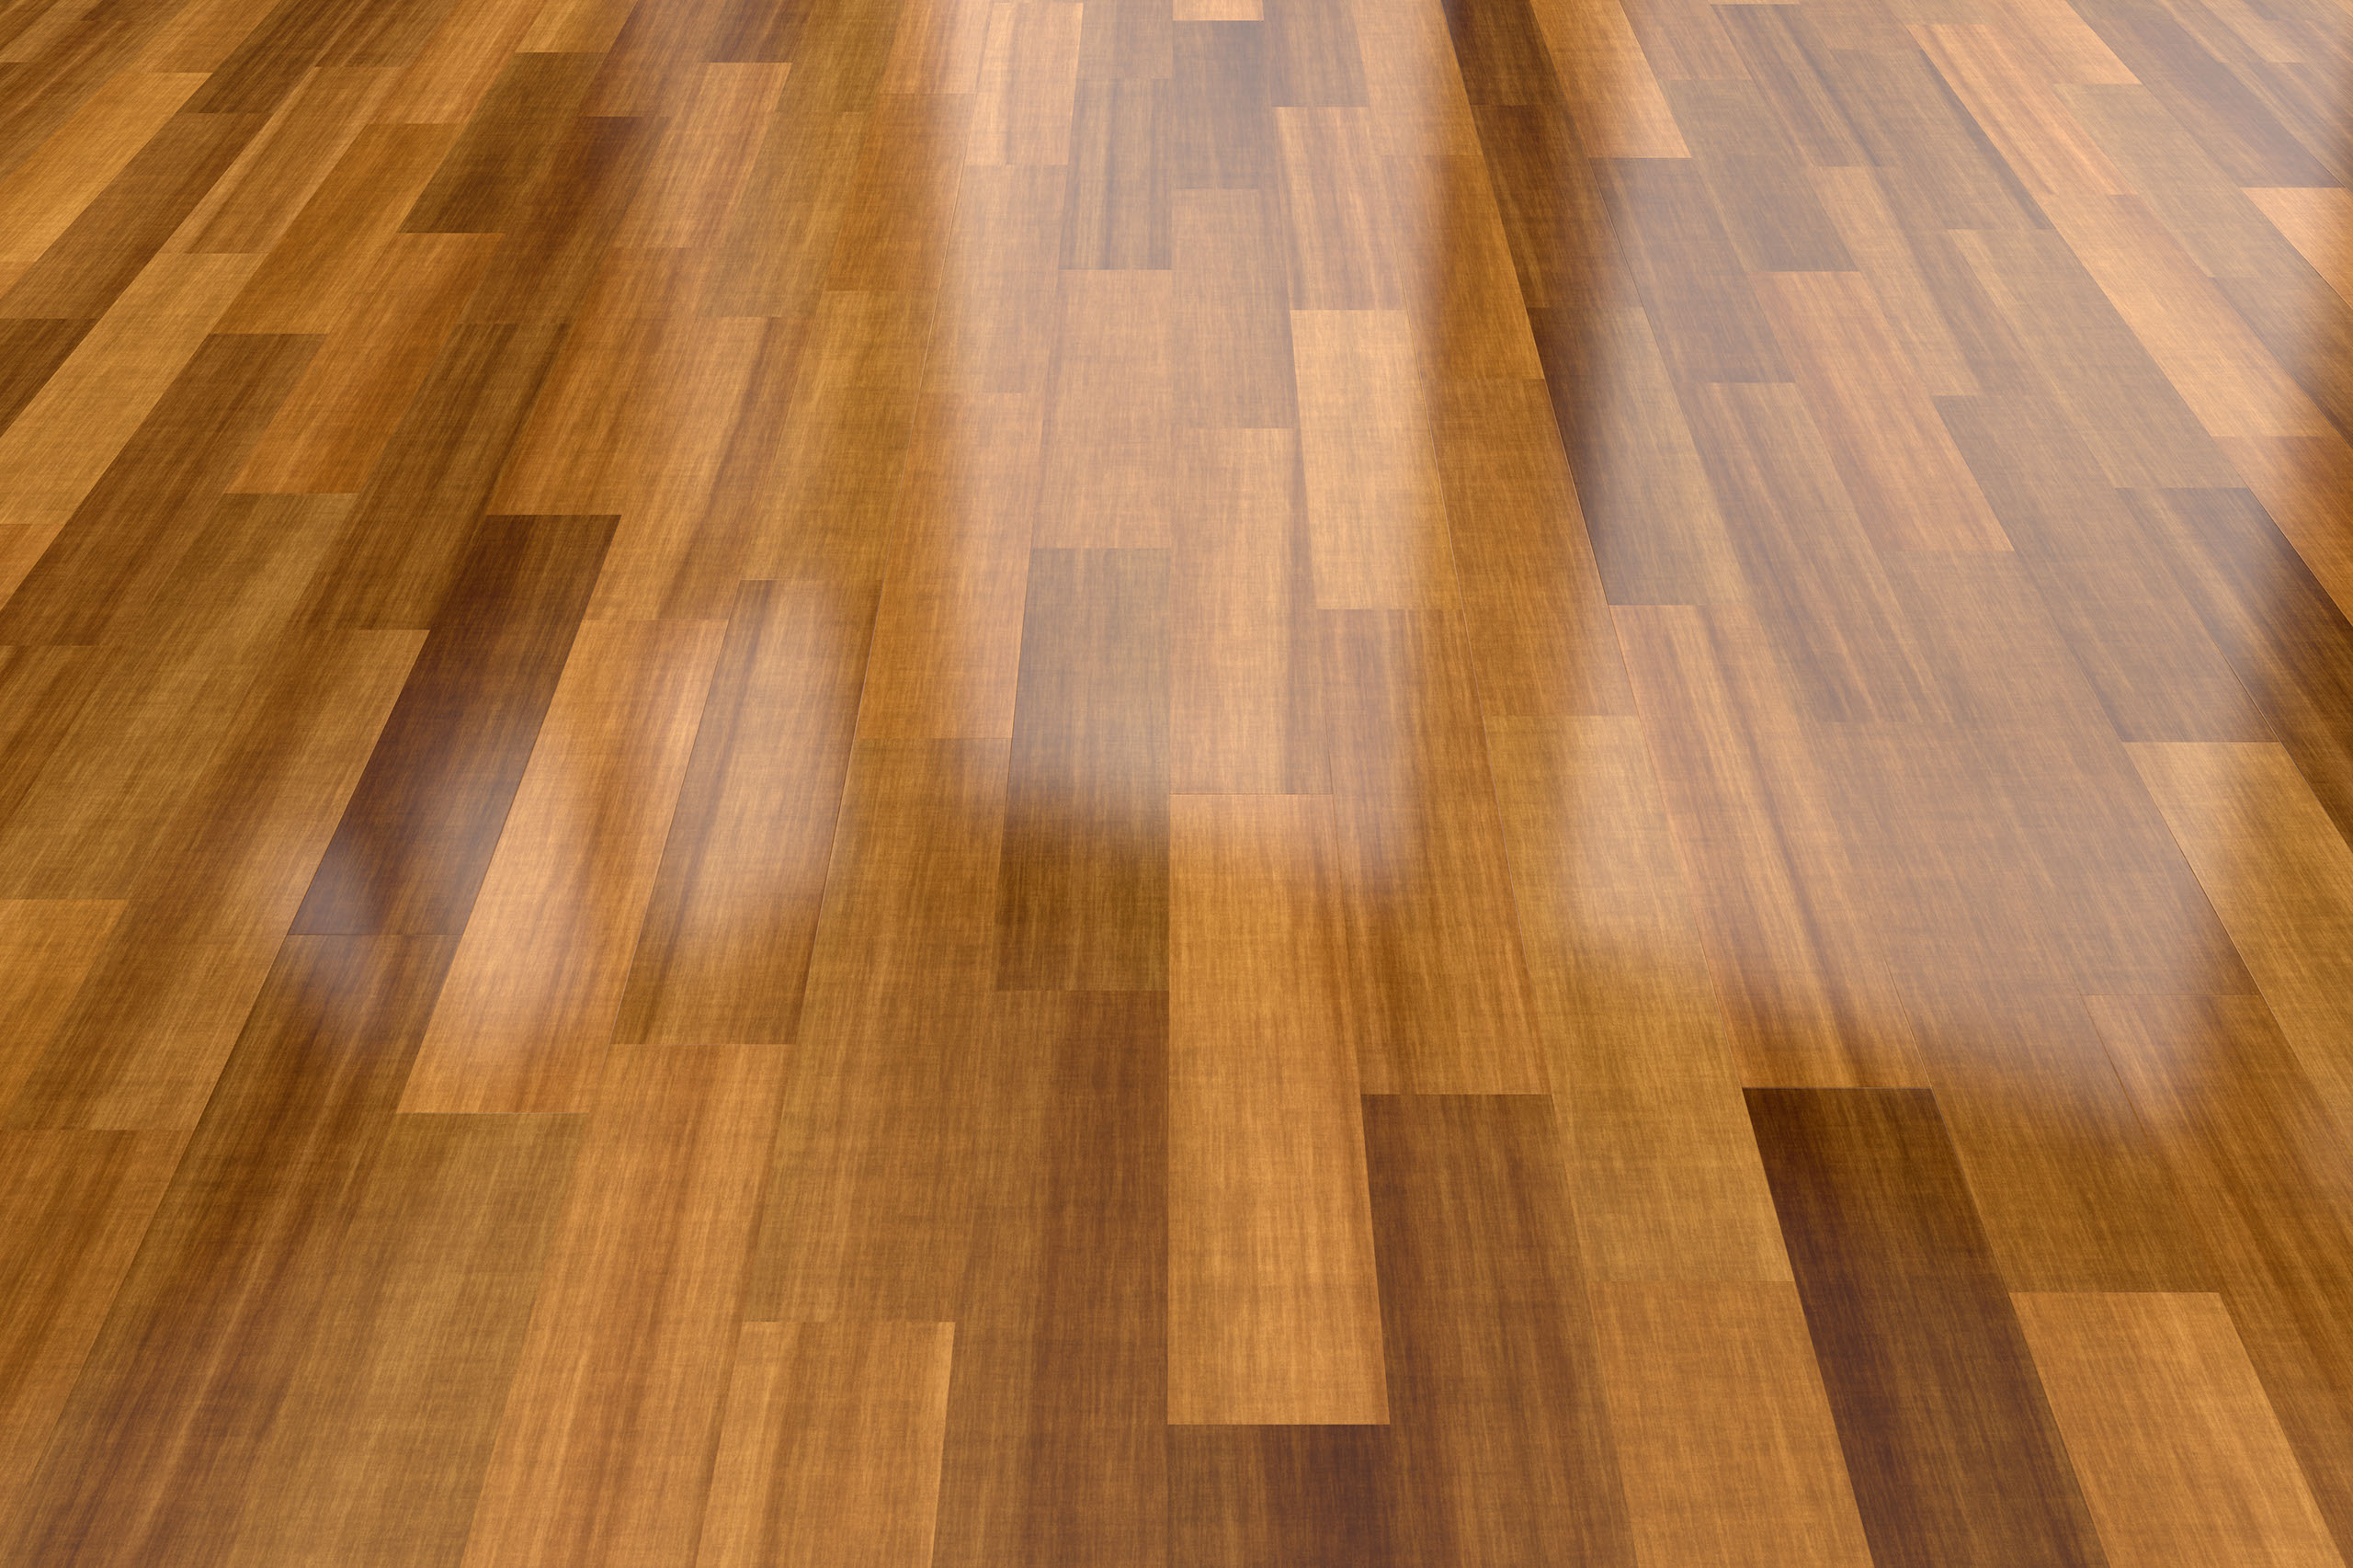 How To Remove Scuff Marks From Polished Wood Floors